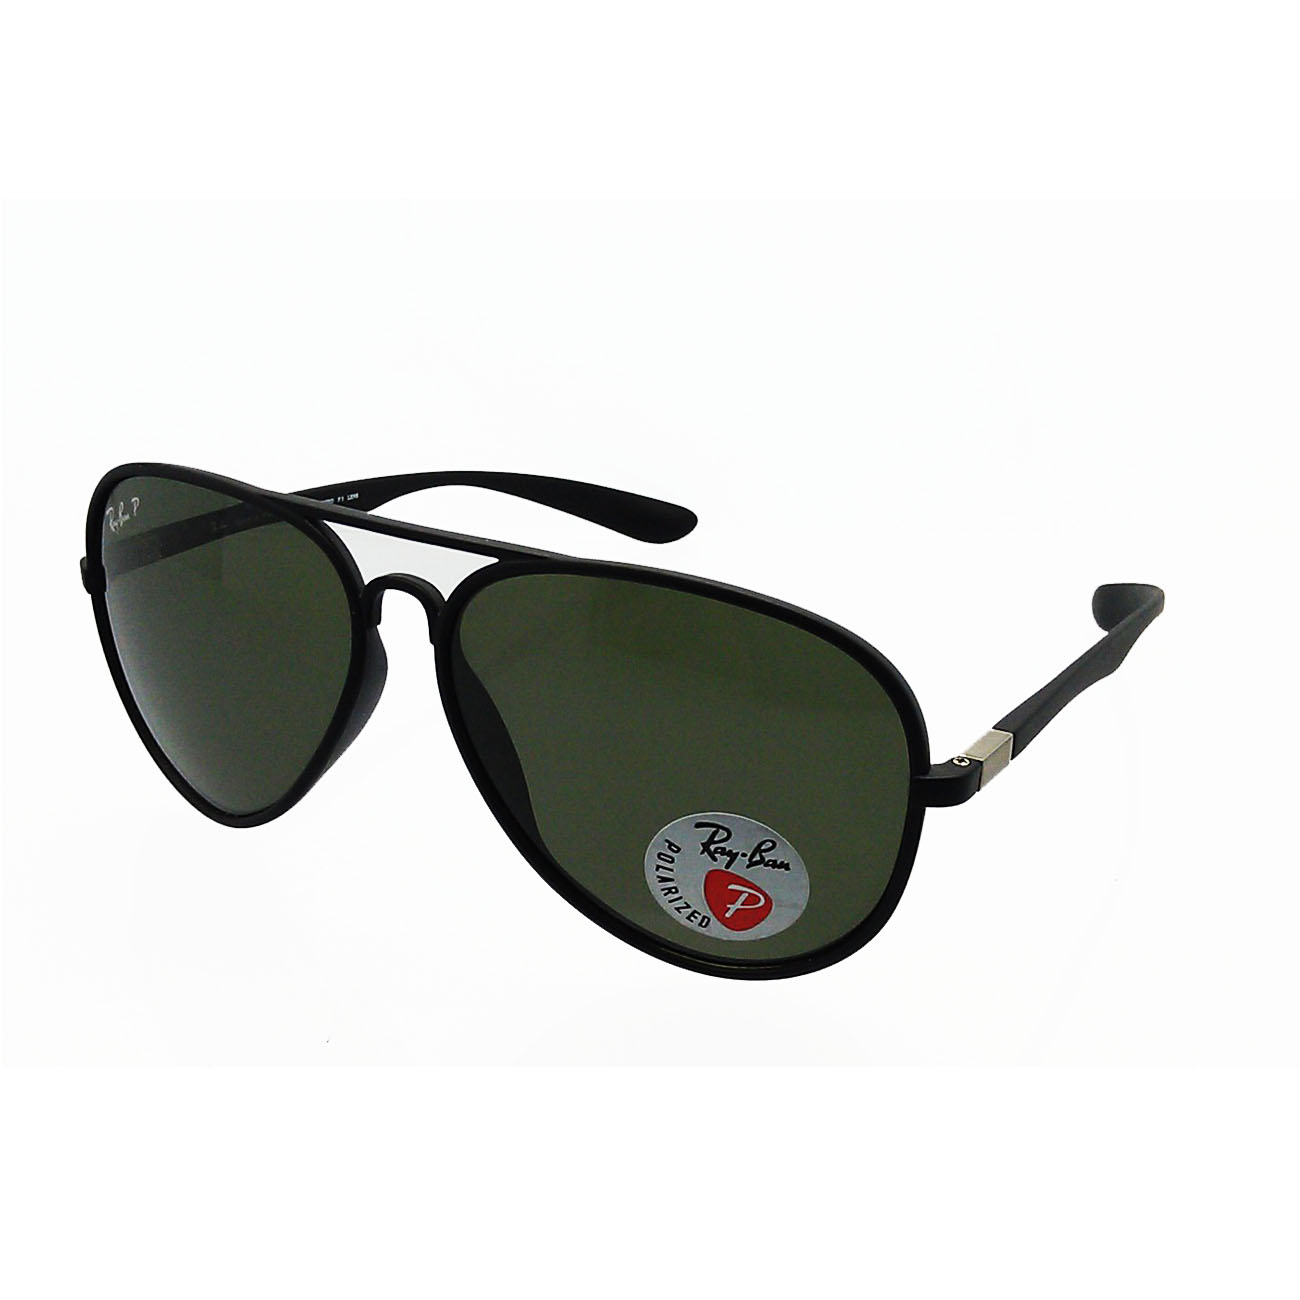 0bb41b6321 Ray Ban Rb3492 014 « One More Soul